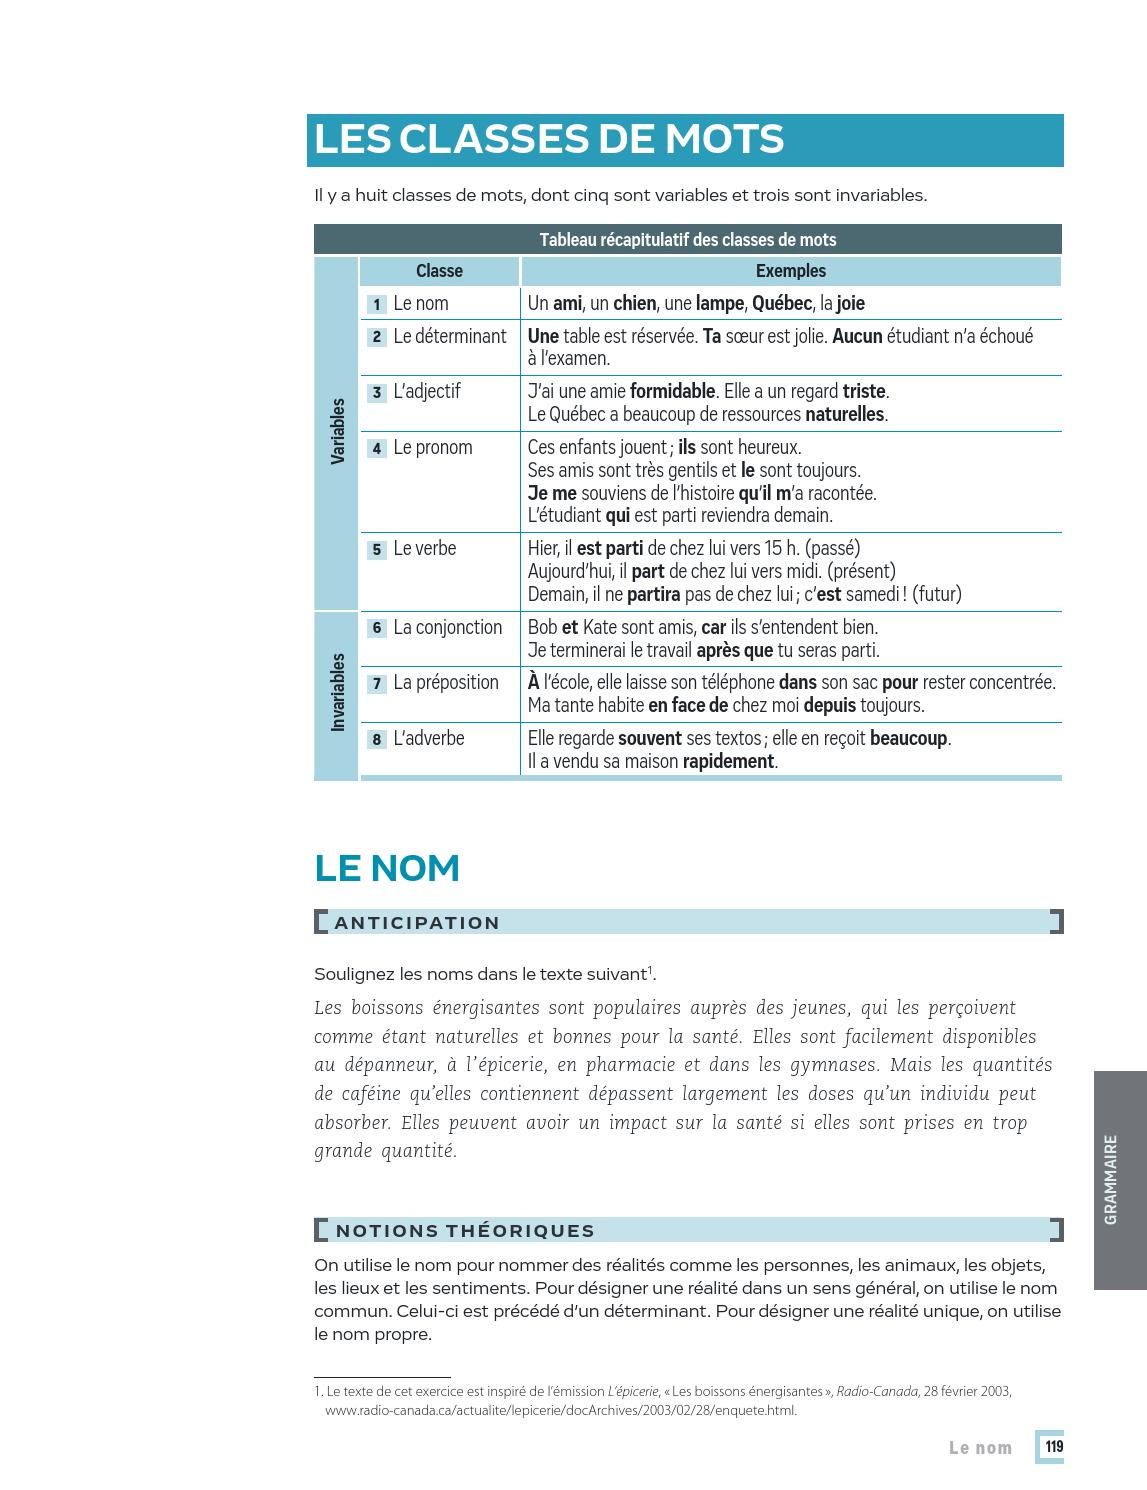 A Mots Decouverts A 100 2e Ed By Les Editions Cec Issuu